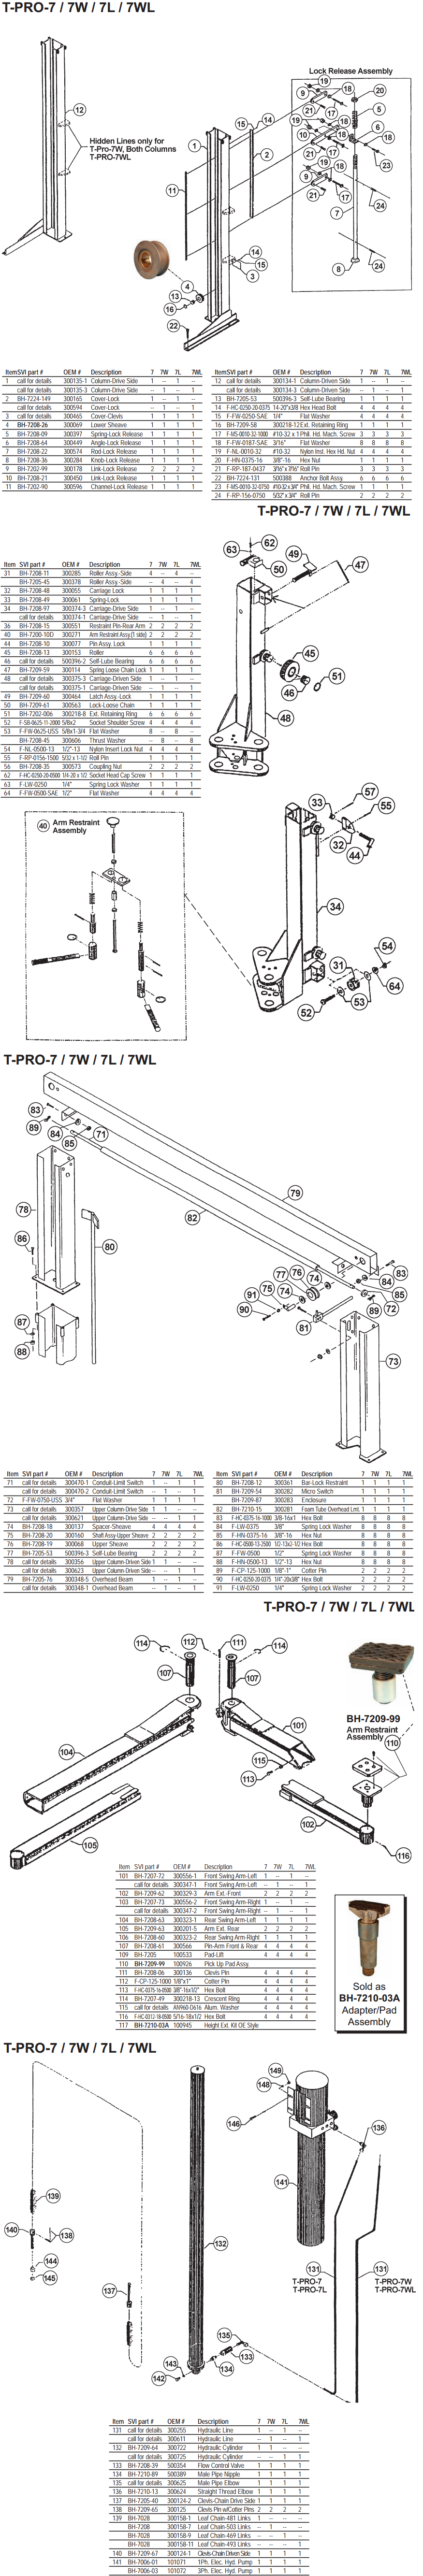 T PRO7 7W 7L 7WL parts diagram for benwil t pro7 benwil lift wiring diagram at eliteediting.co